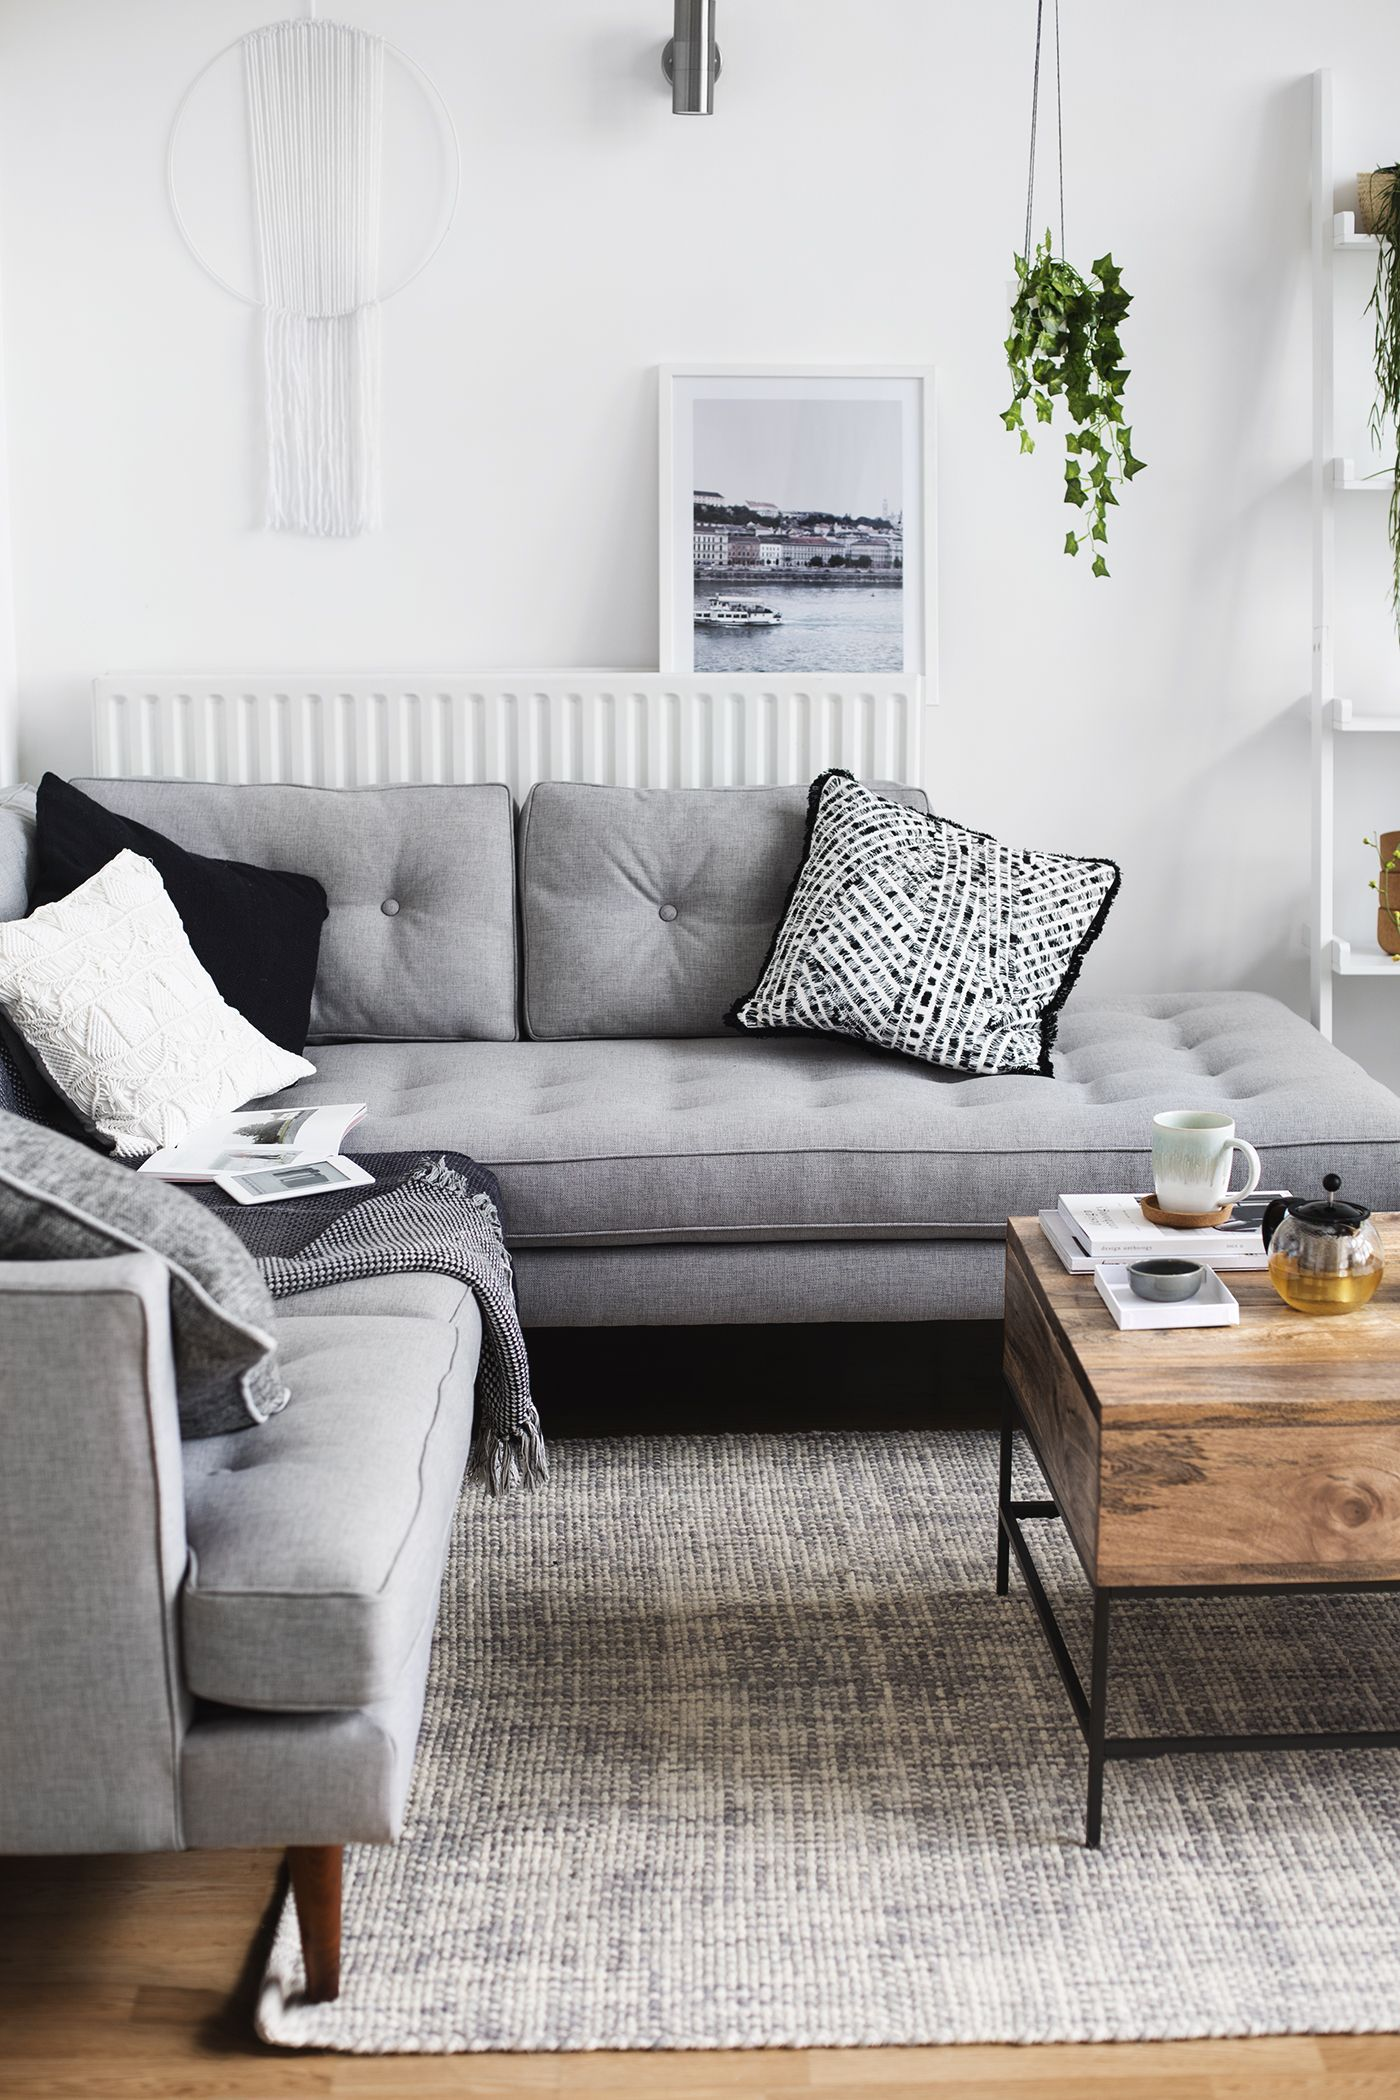 Minimal Sofa Design How Do You Remove Pen Marks From Leather 25 43 Minimalist Living Room Ideas Home And